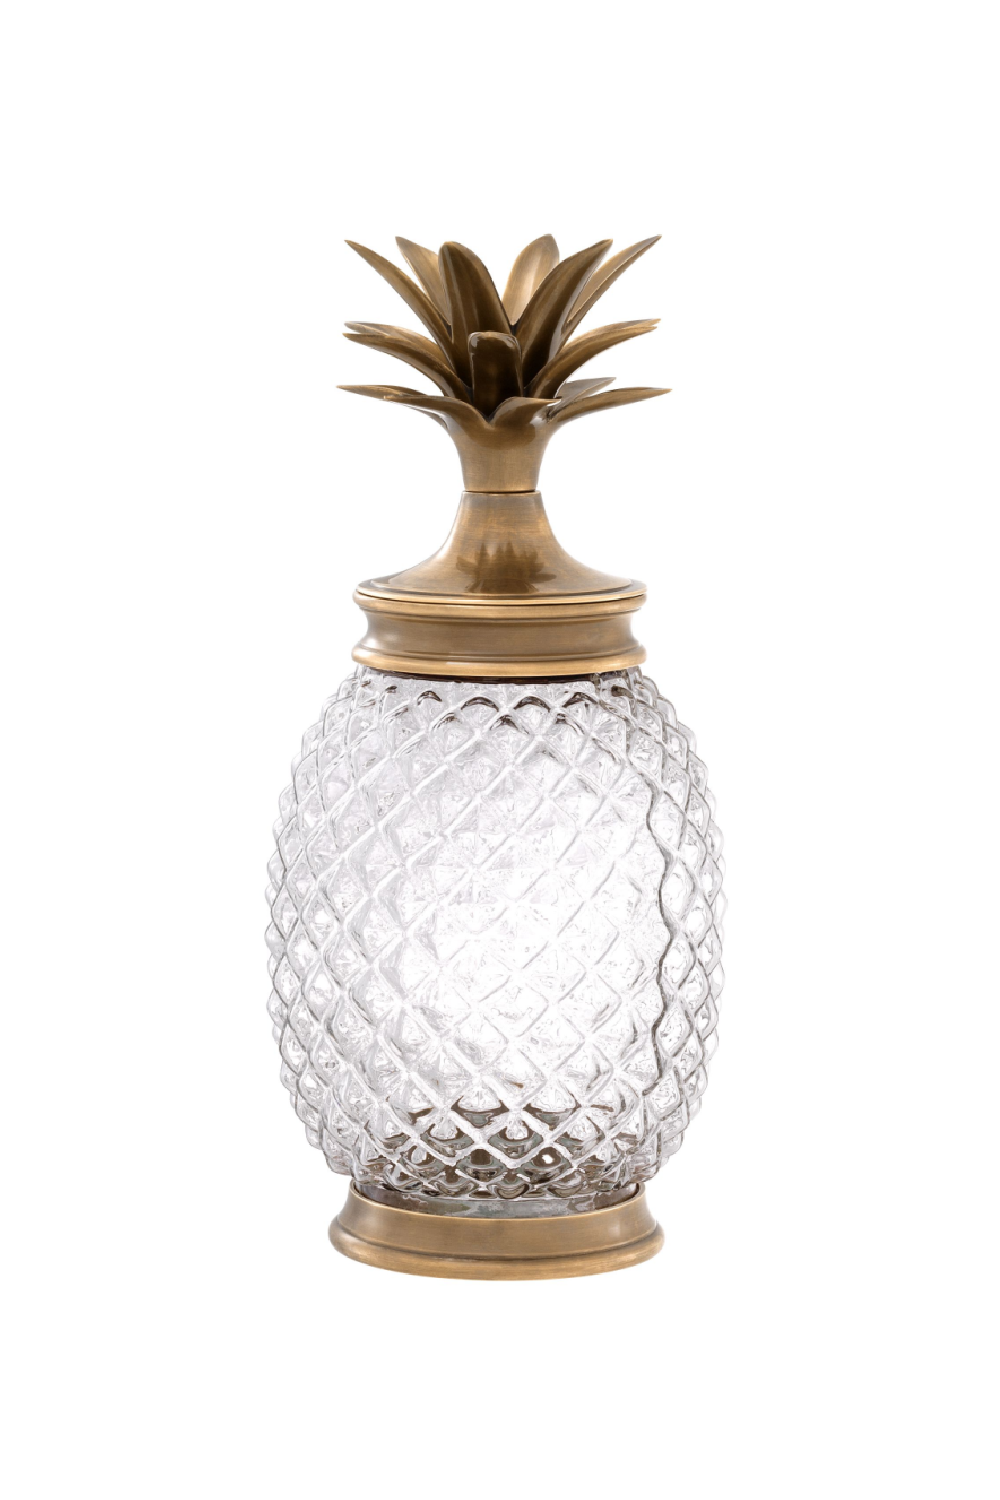 Glass Pineapple Jar | Eichholtz Hayworth | OROA - Luxury Decor